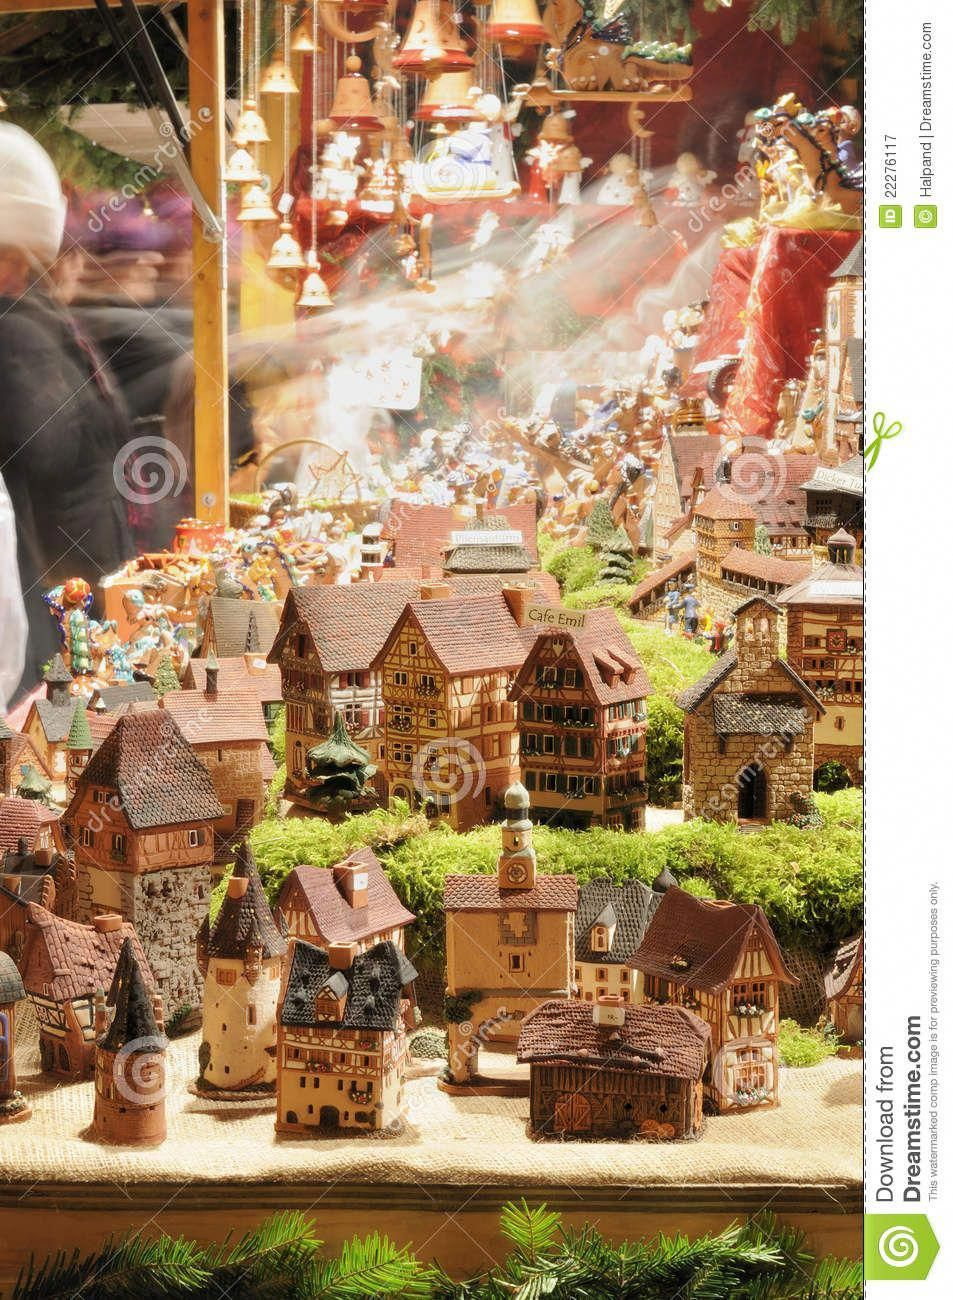 Photo about Detail, at night, of tiny model houses stand